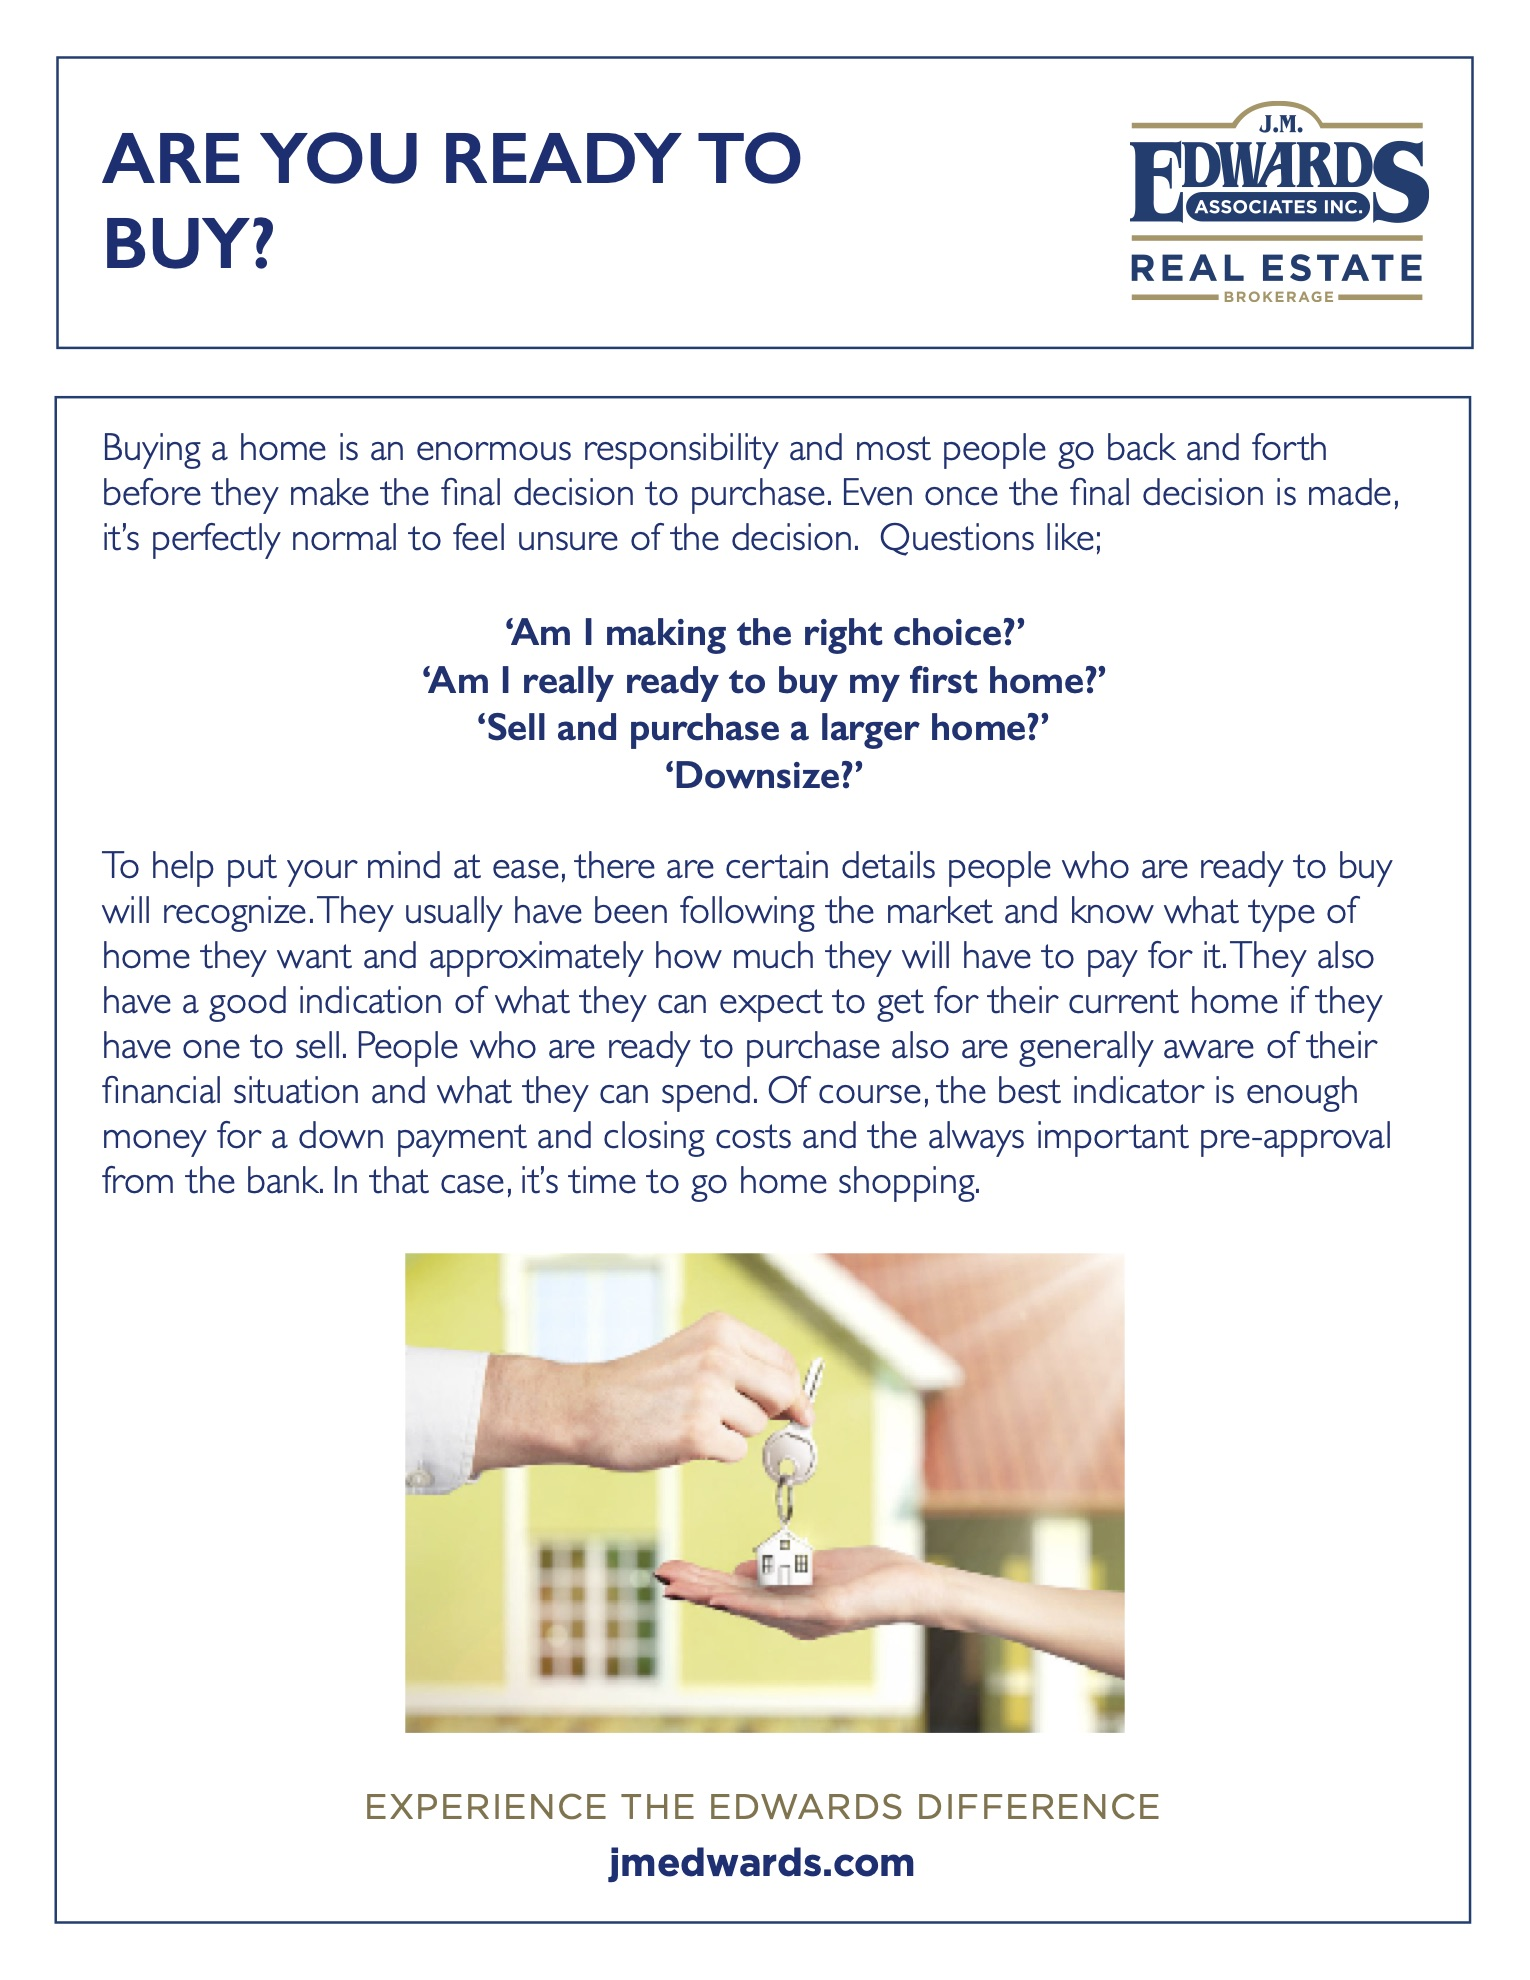 SUBMIT: FT01 - Are You Ready To Buy.jpg